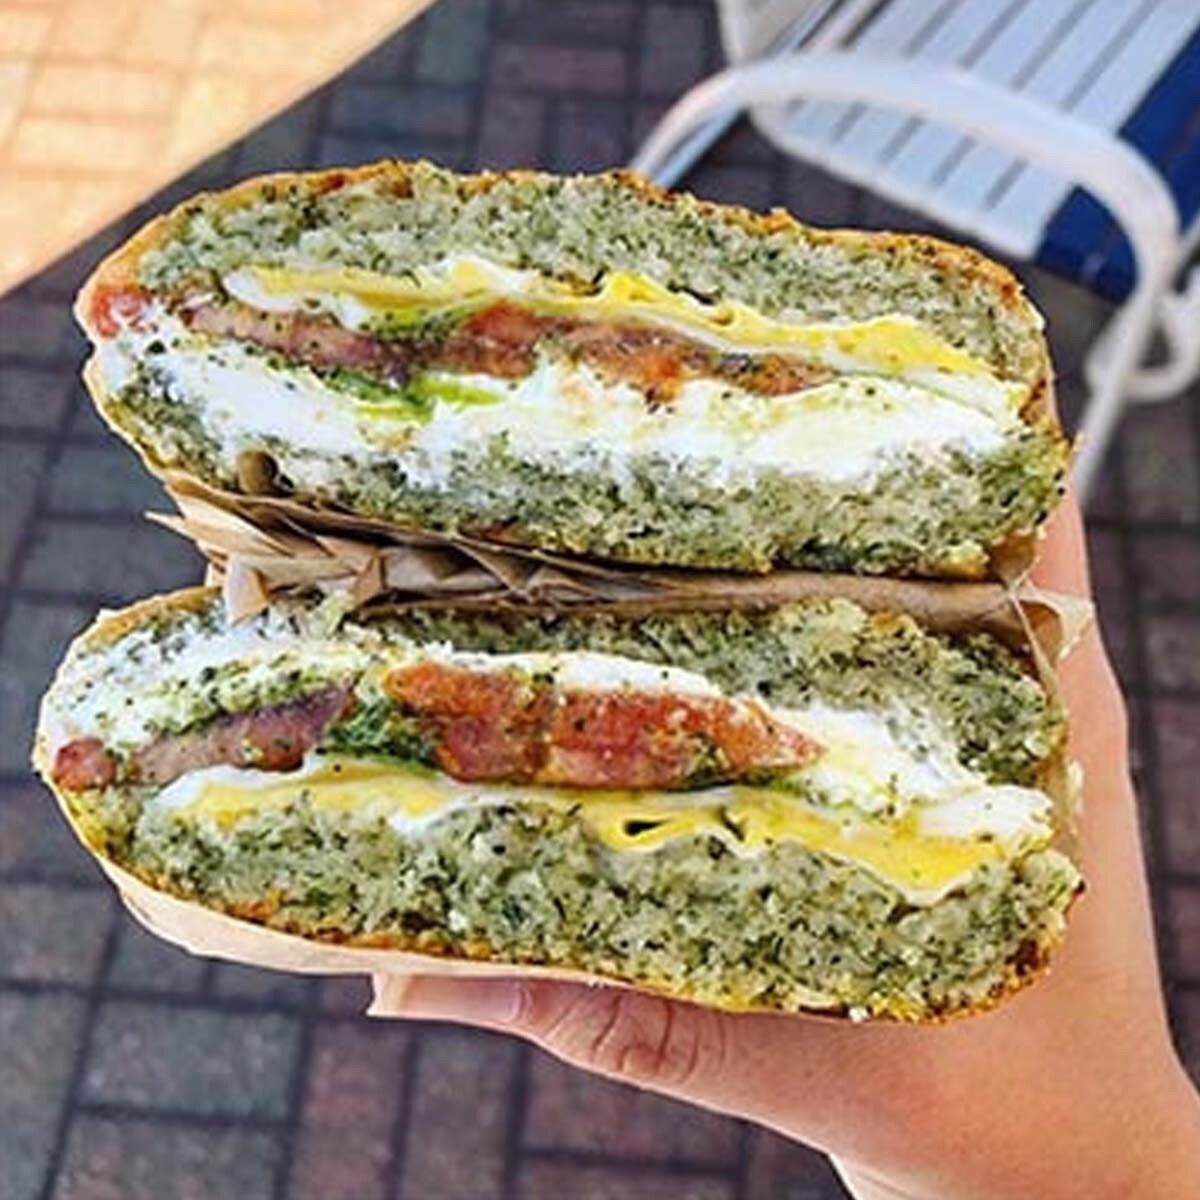 The Easy Cheezy Sandwich